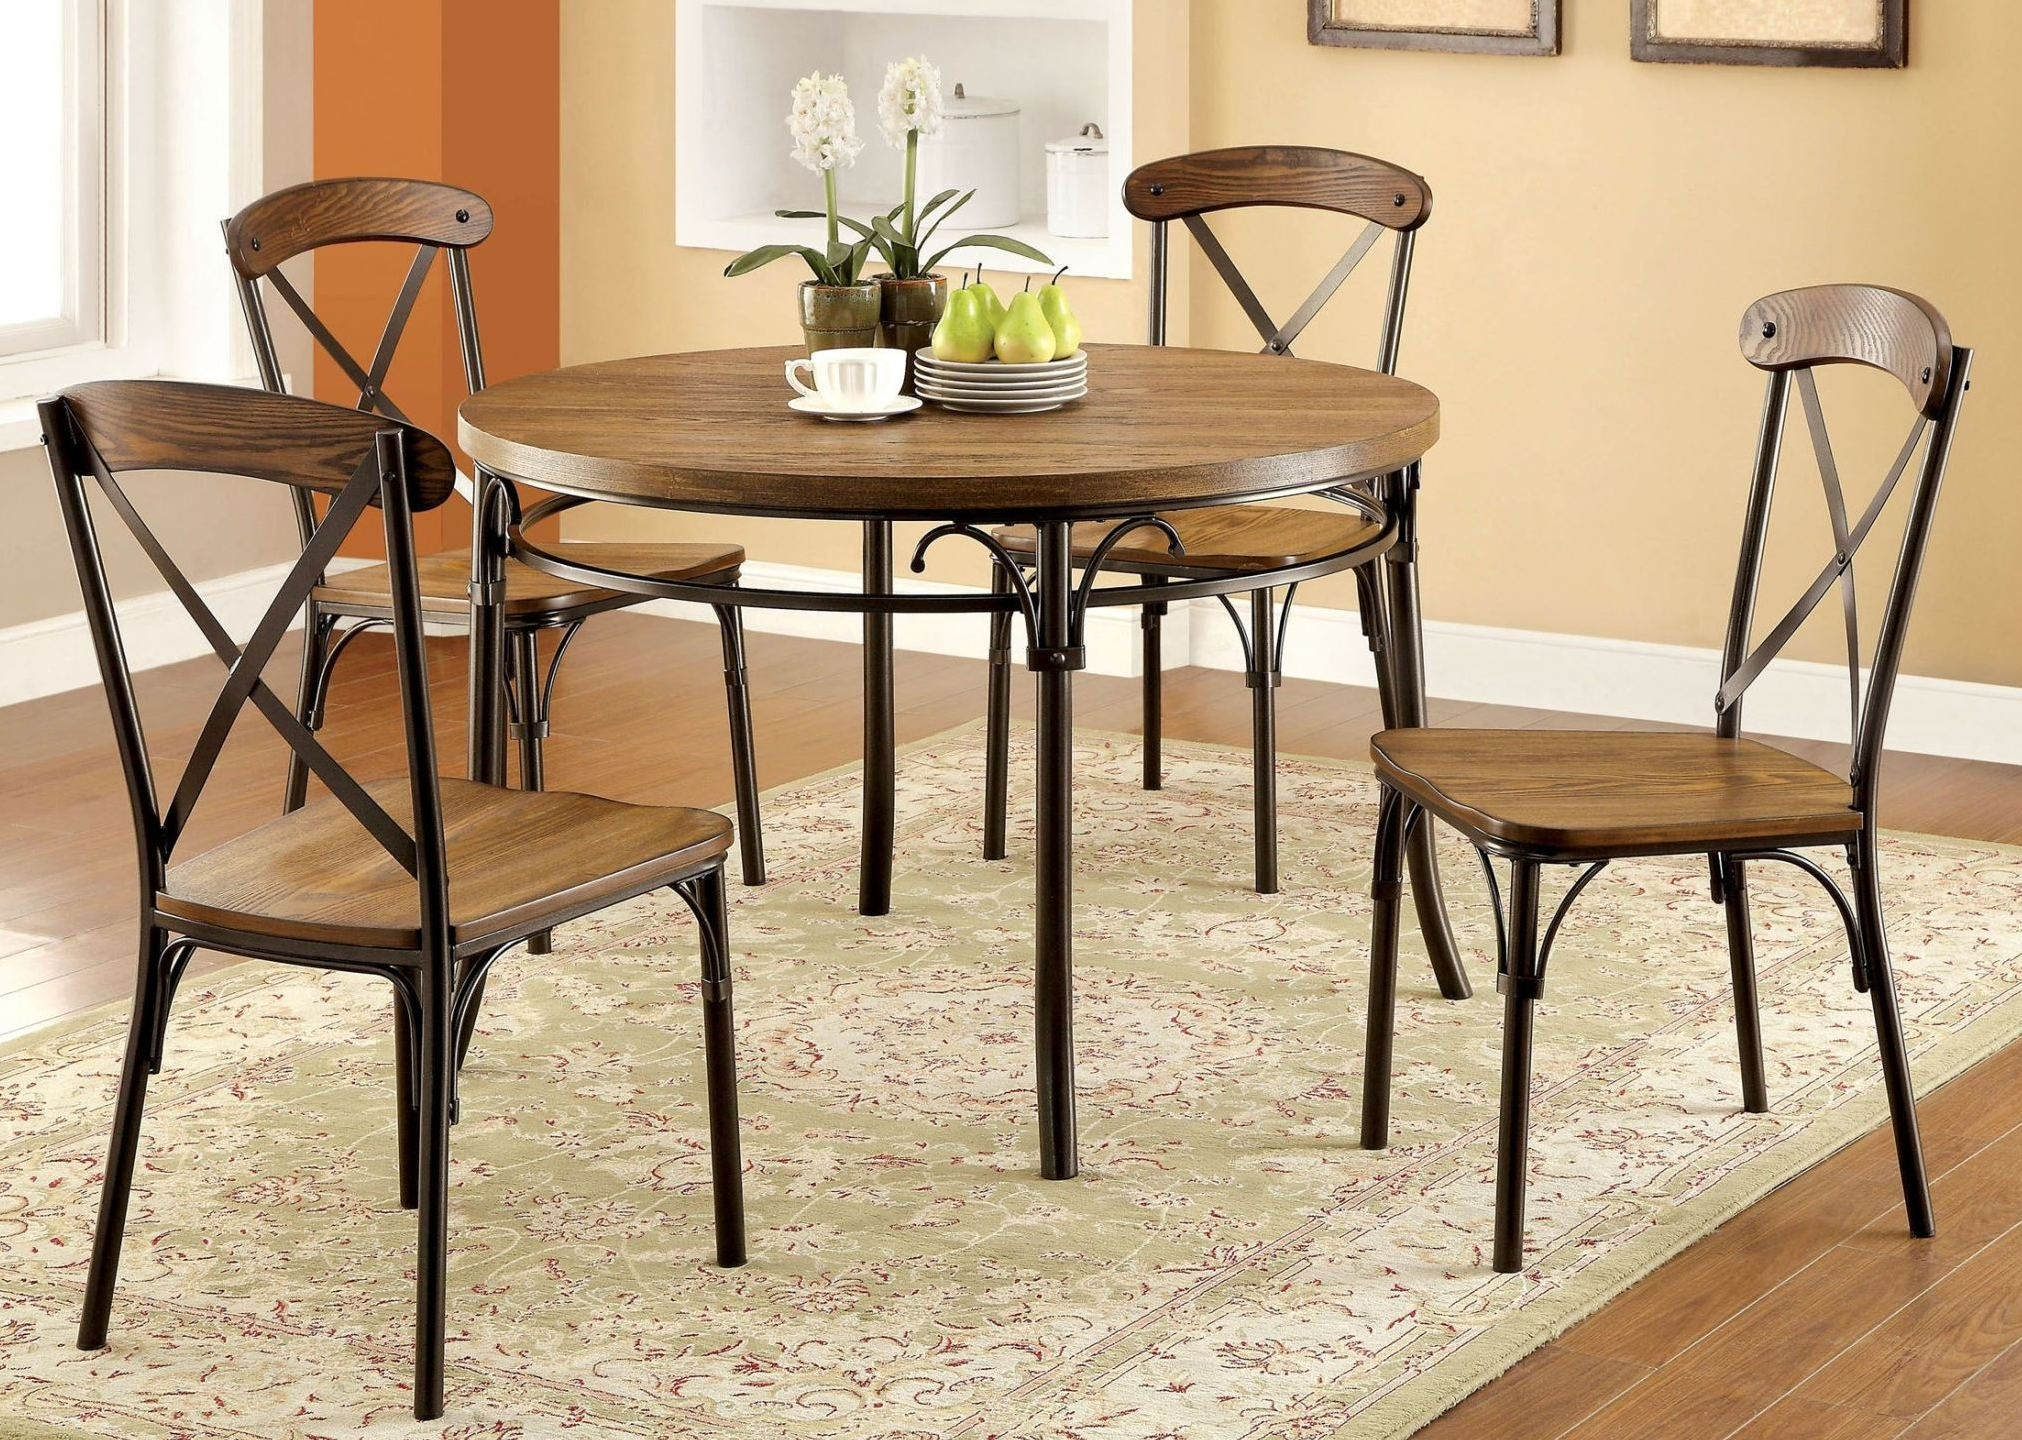 Crosby bronze round leg dining room set from furniture of